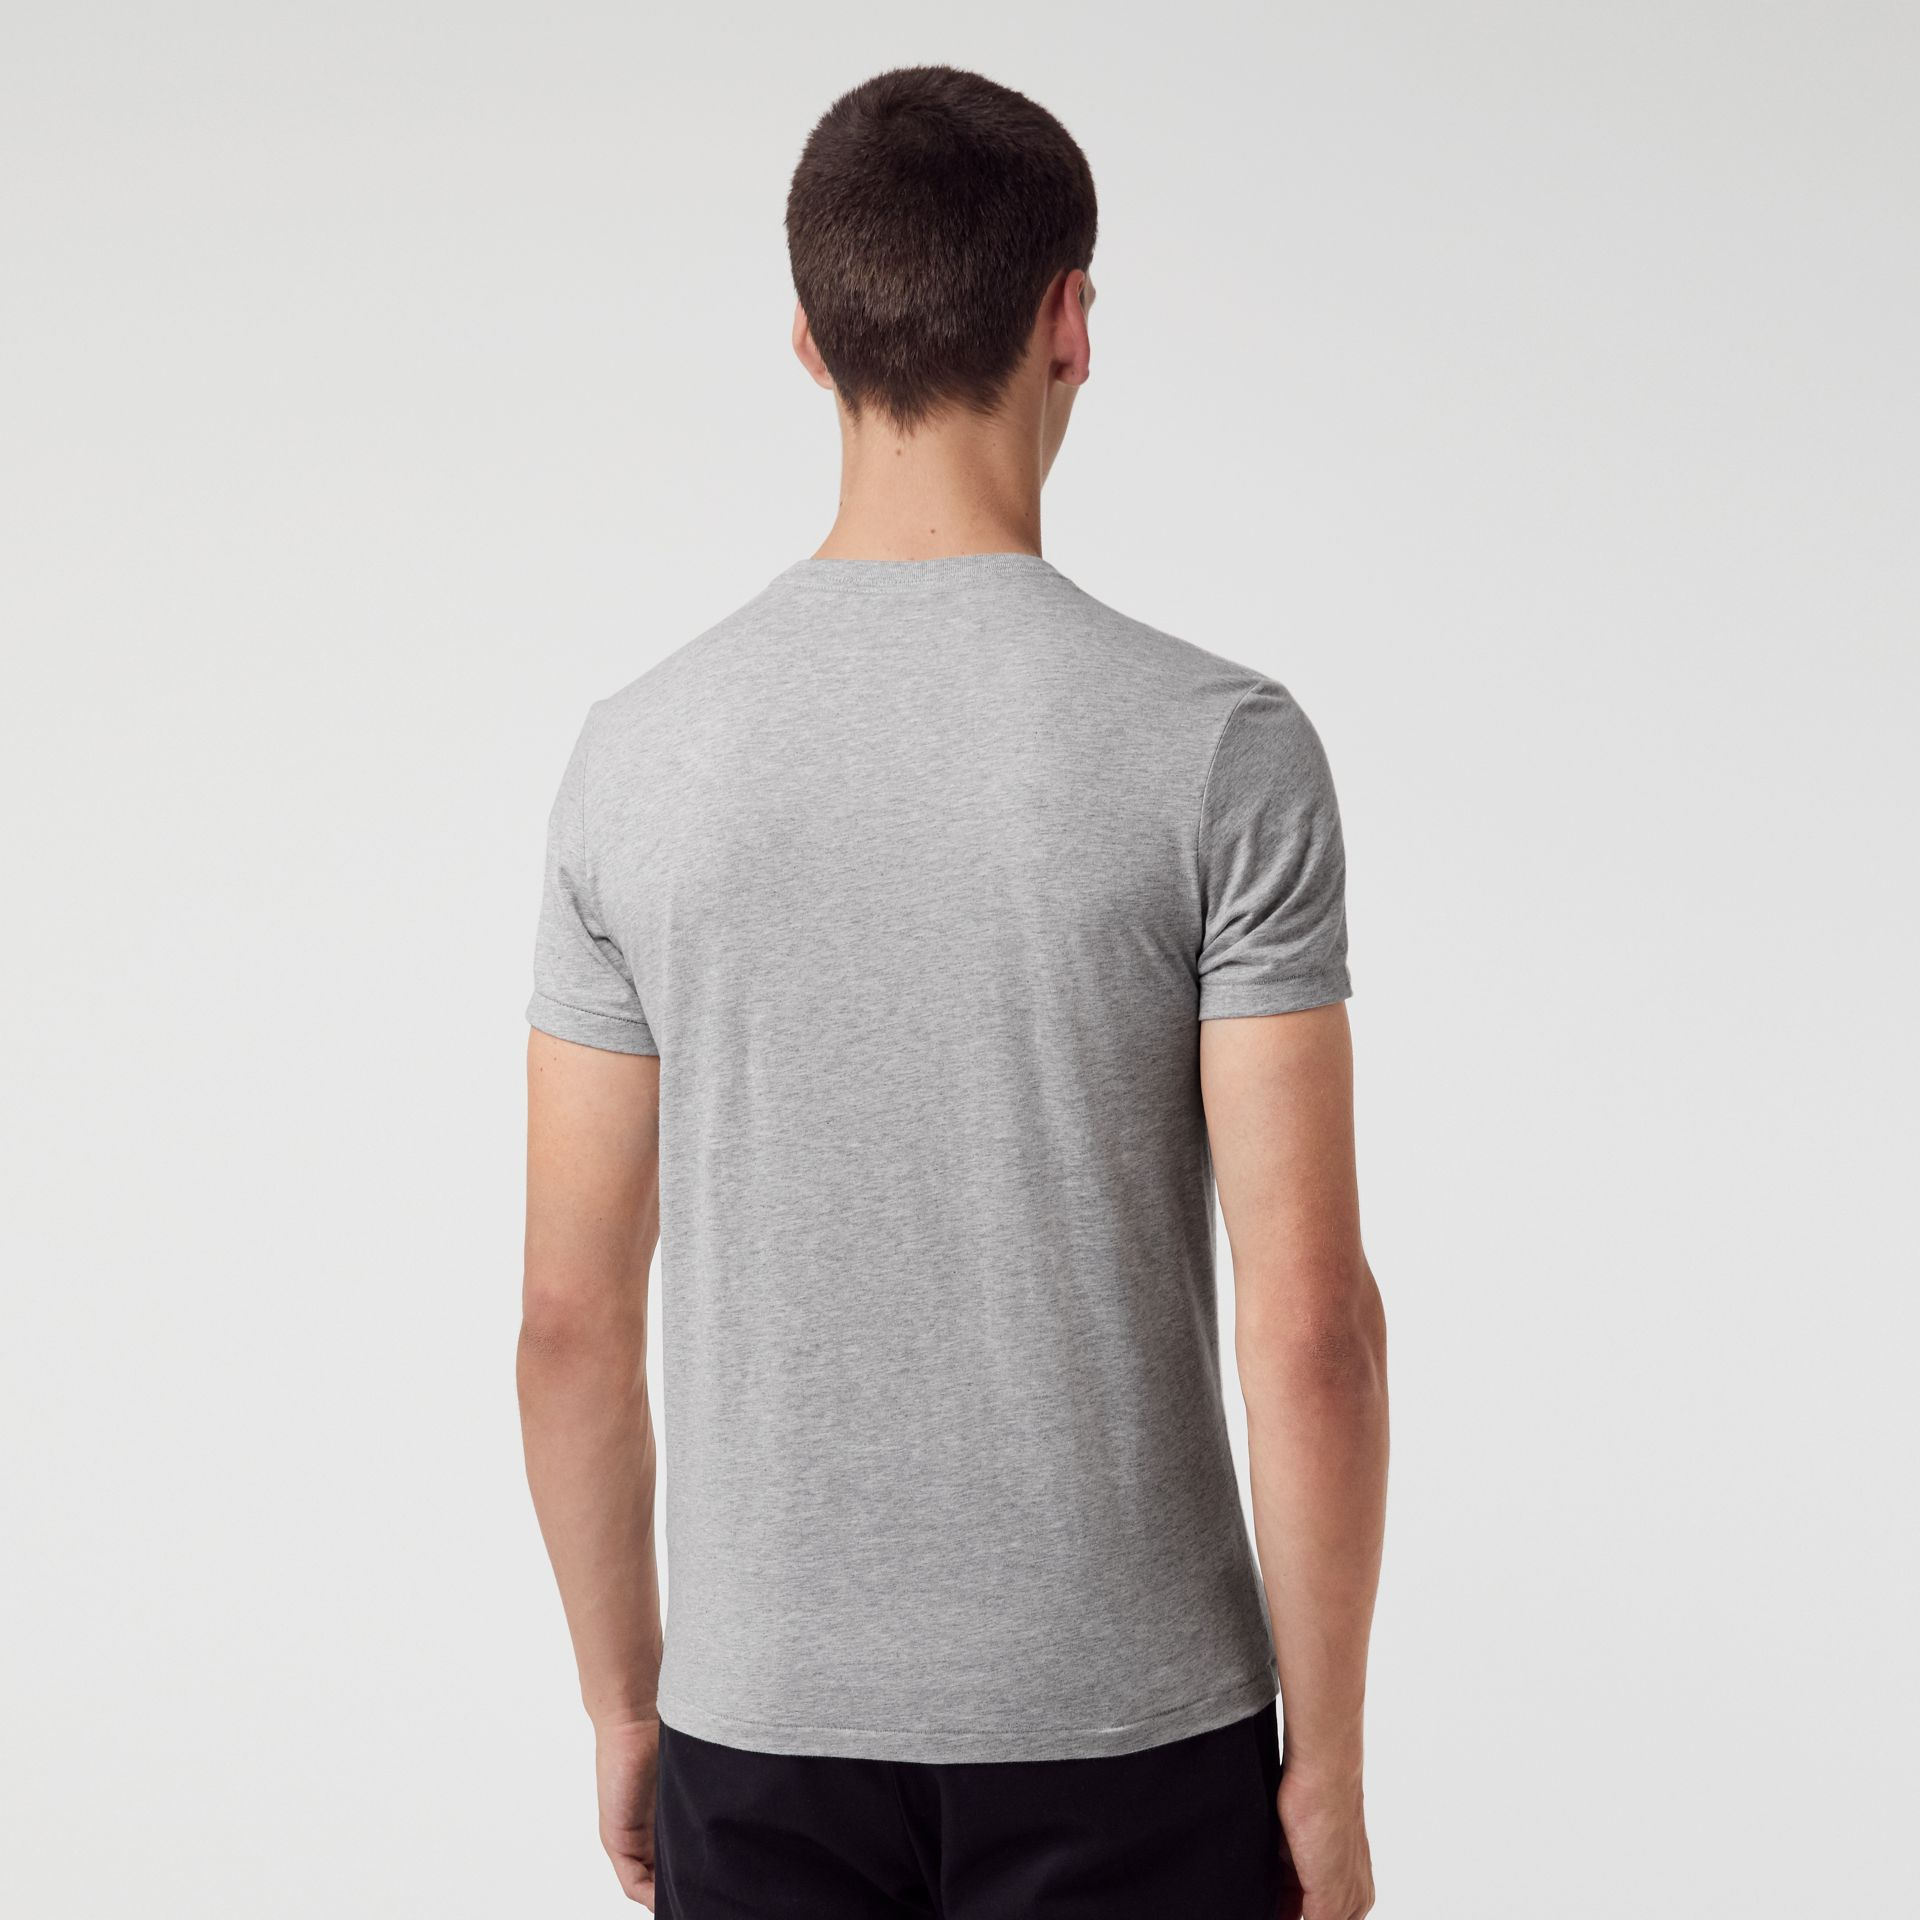 Cotton Jersey V-neck T-shirt in Pale Grey Melange - Men | Burberry United States - gallery image 2